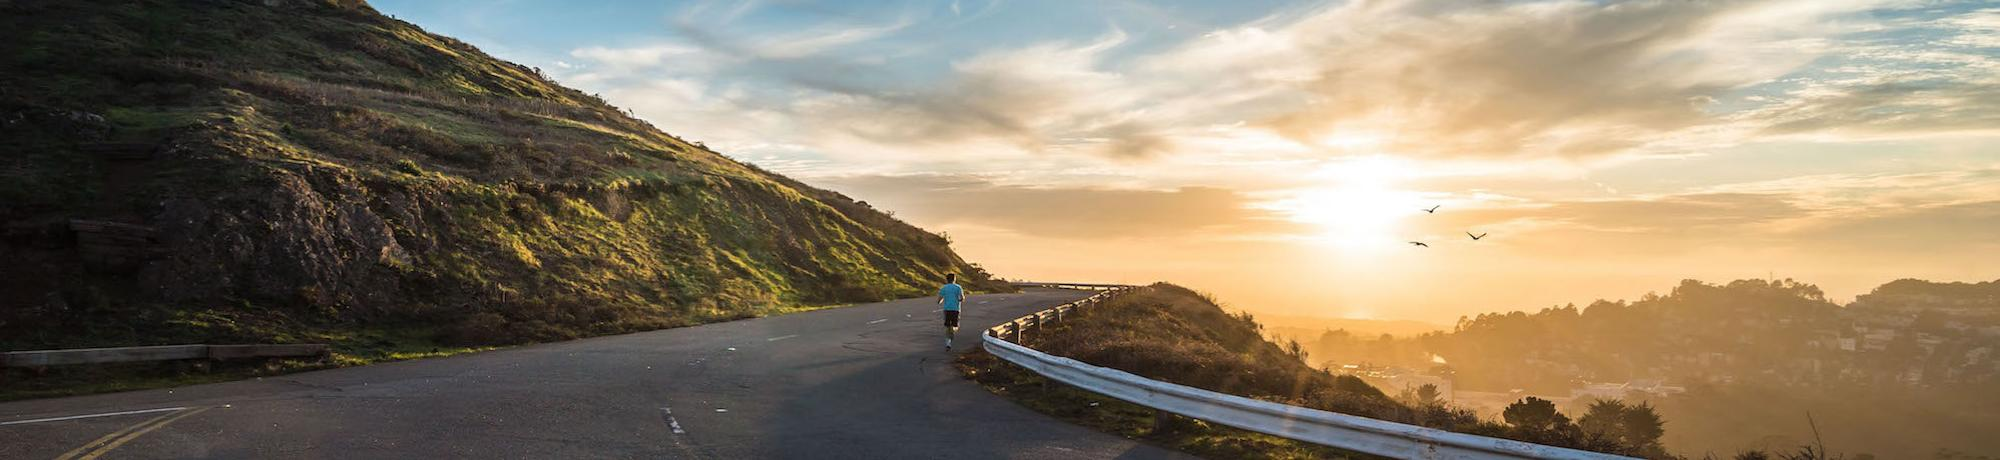 Man running in Californian hills at sunset looking at San Francisco in the distance